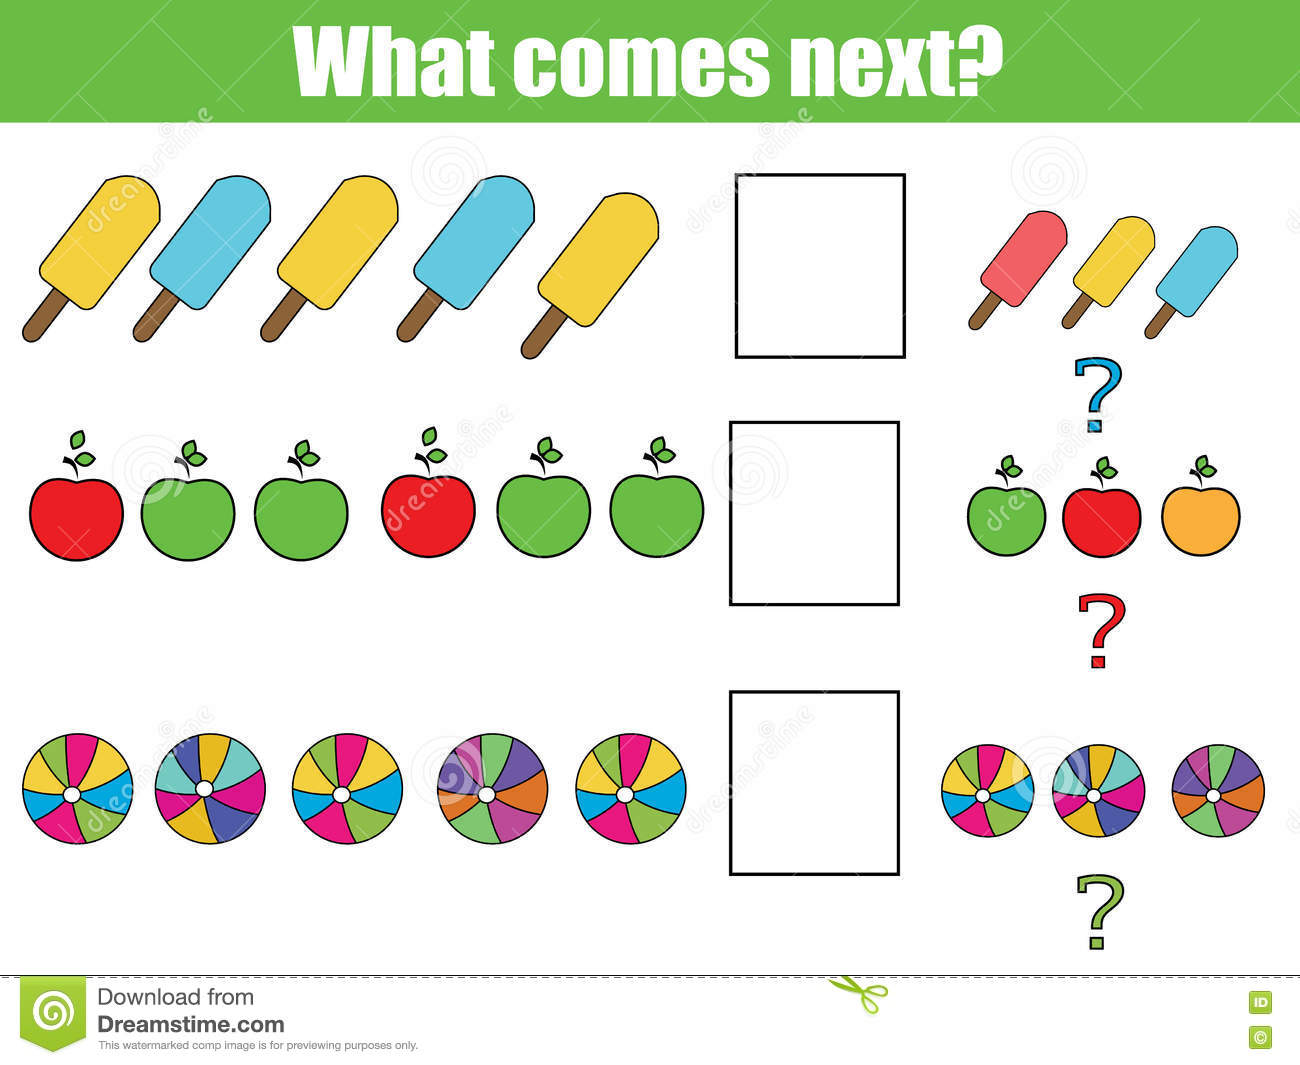 what comes next educational children game kids activity sheet continue the row task royalty - Kids Activity Sheet